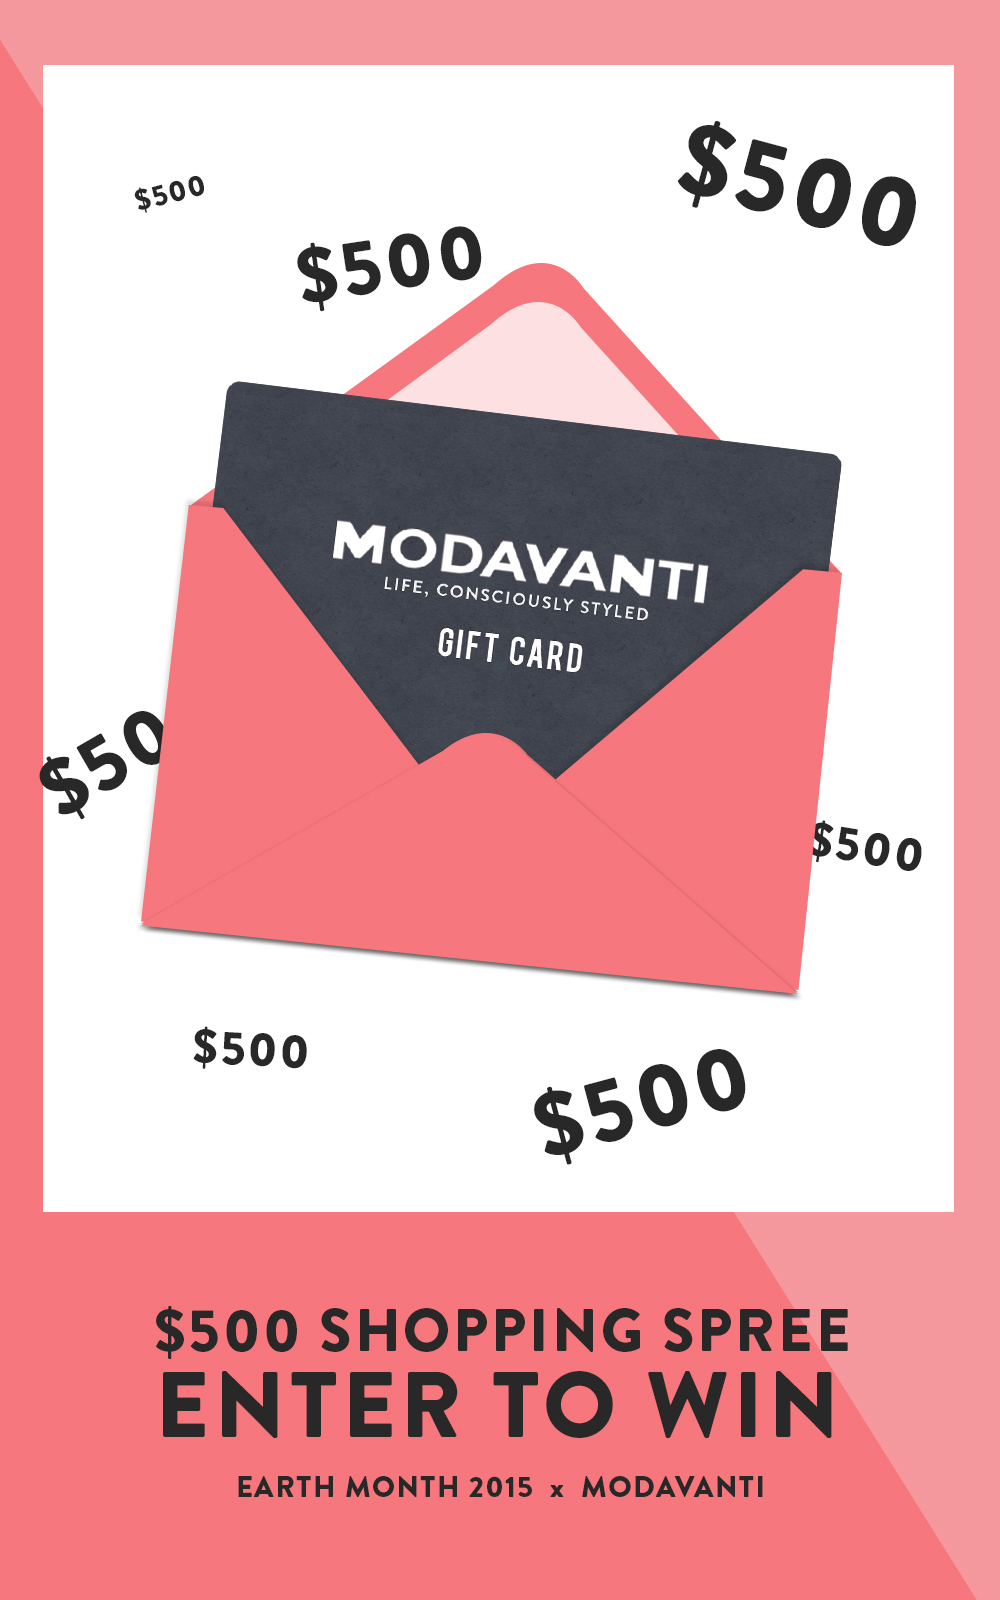 Shopping Spree Modavanti Contest